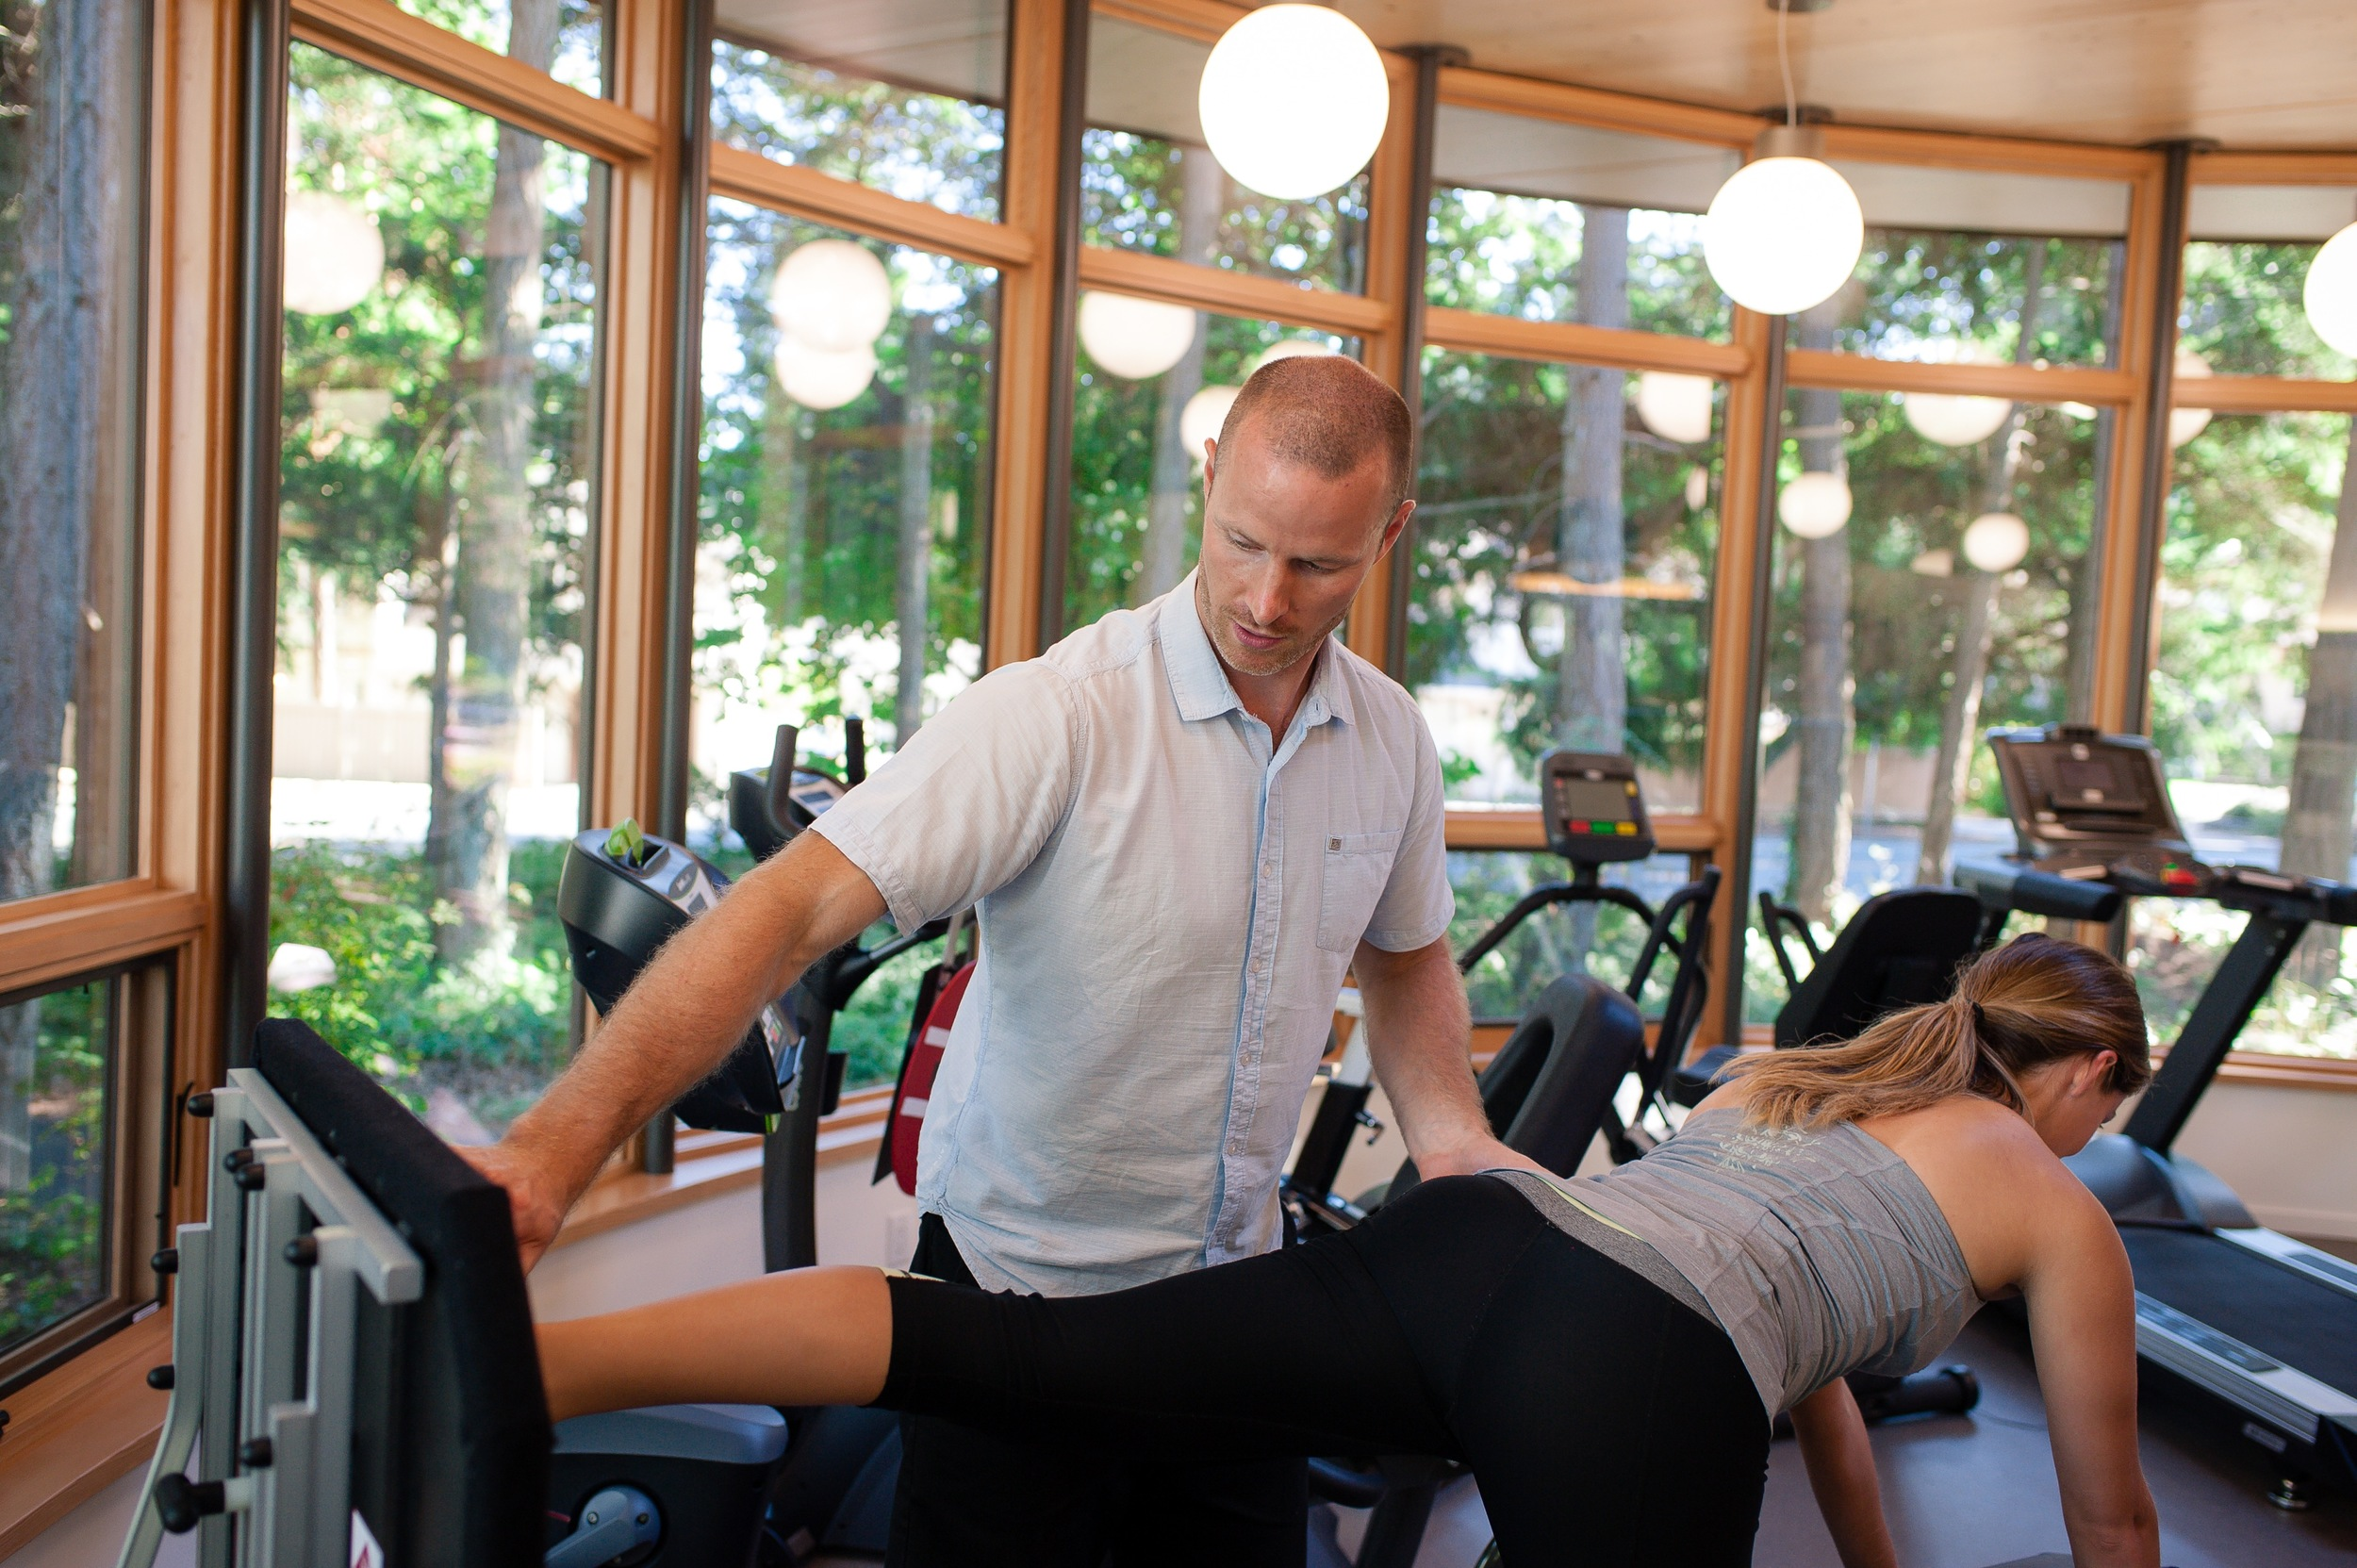 Physiotherapist in Victoria, BC